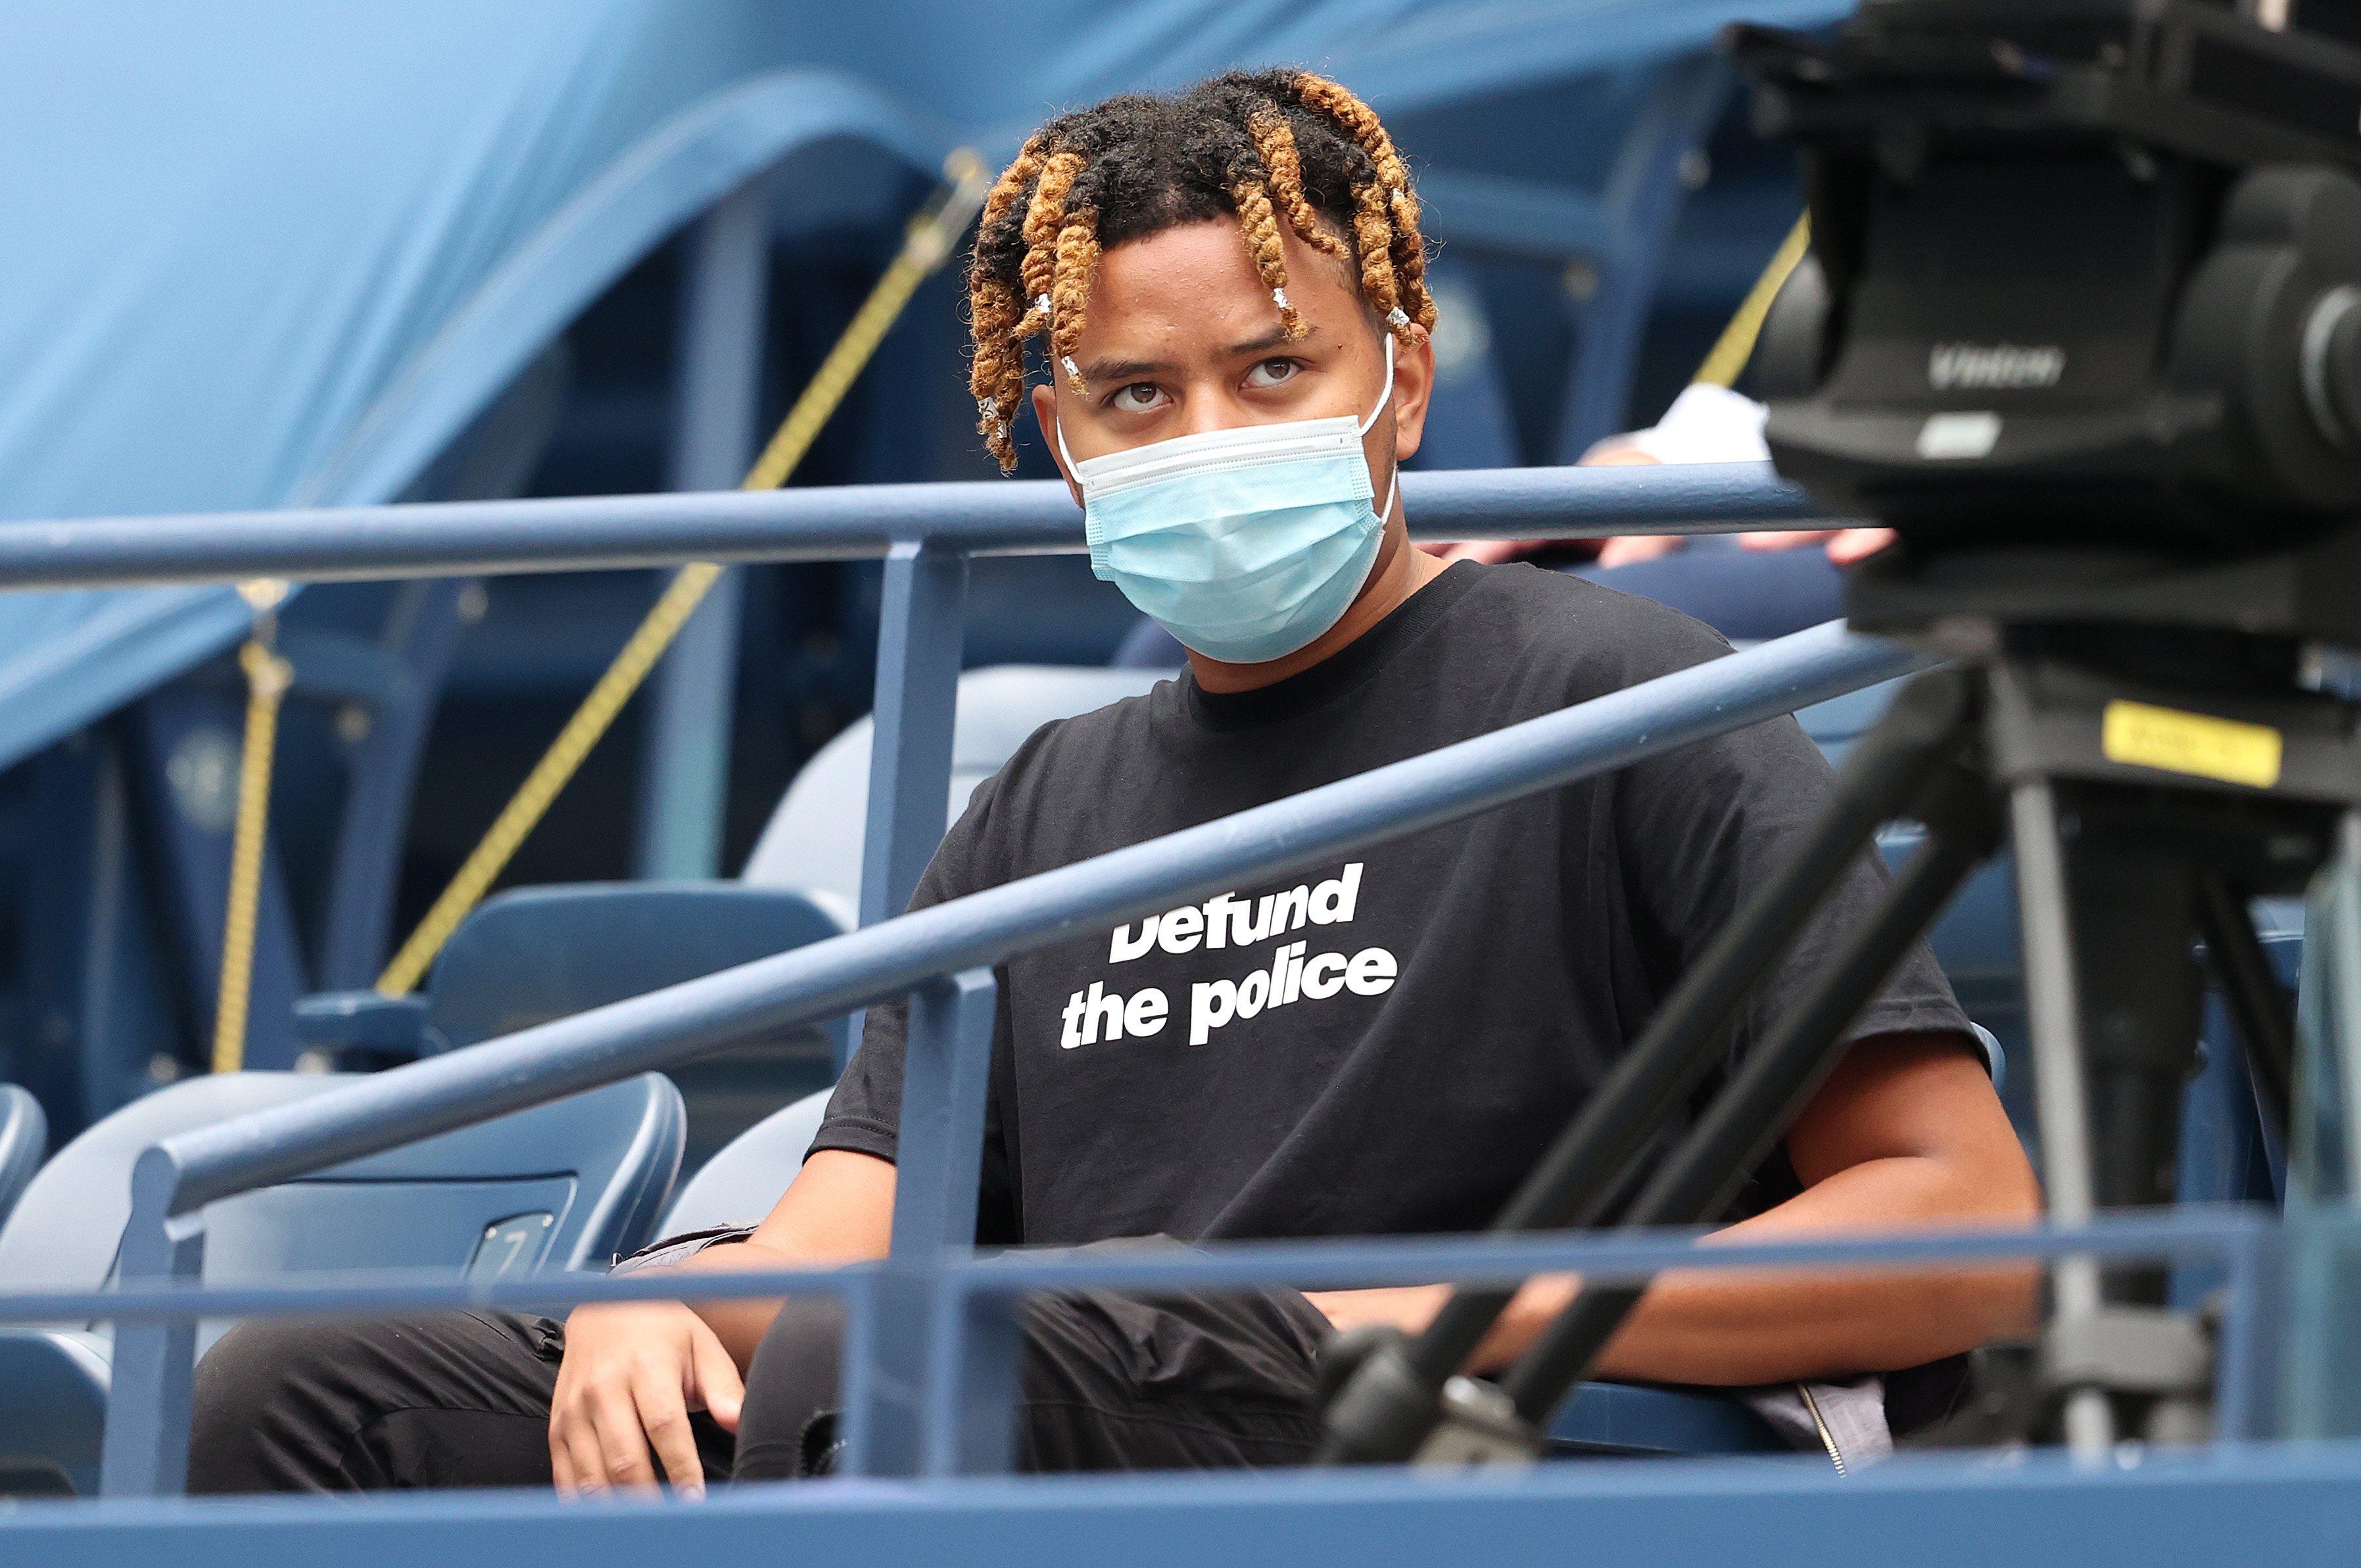 Cordae, rapper and boyfriend of Naomi Osaka, looks on at a tennis match in 2020